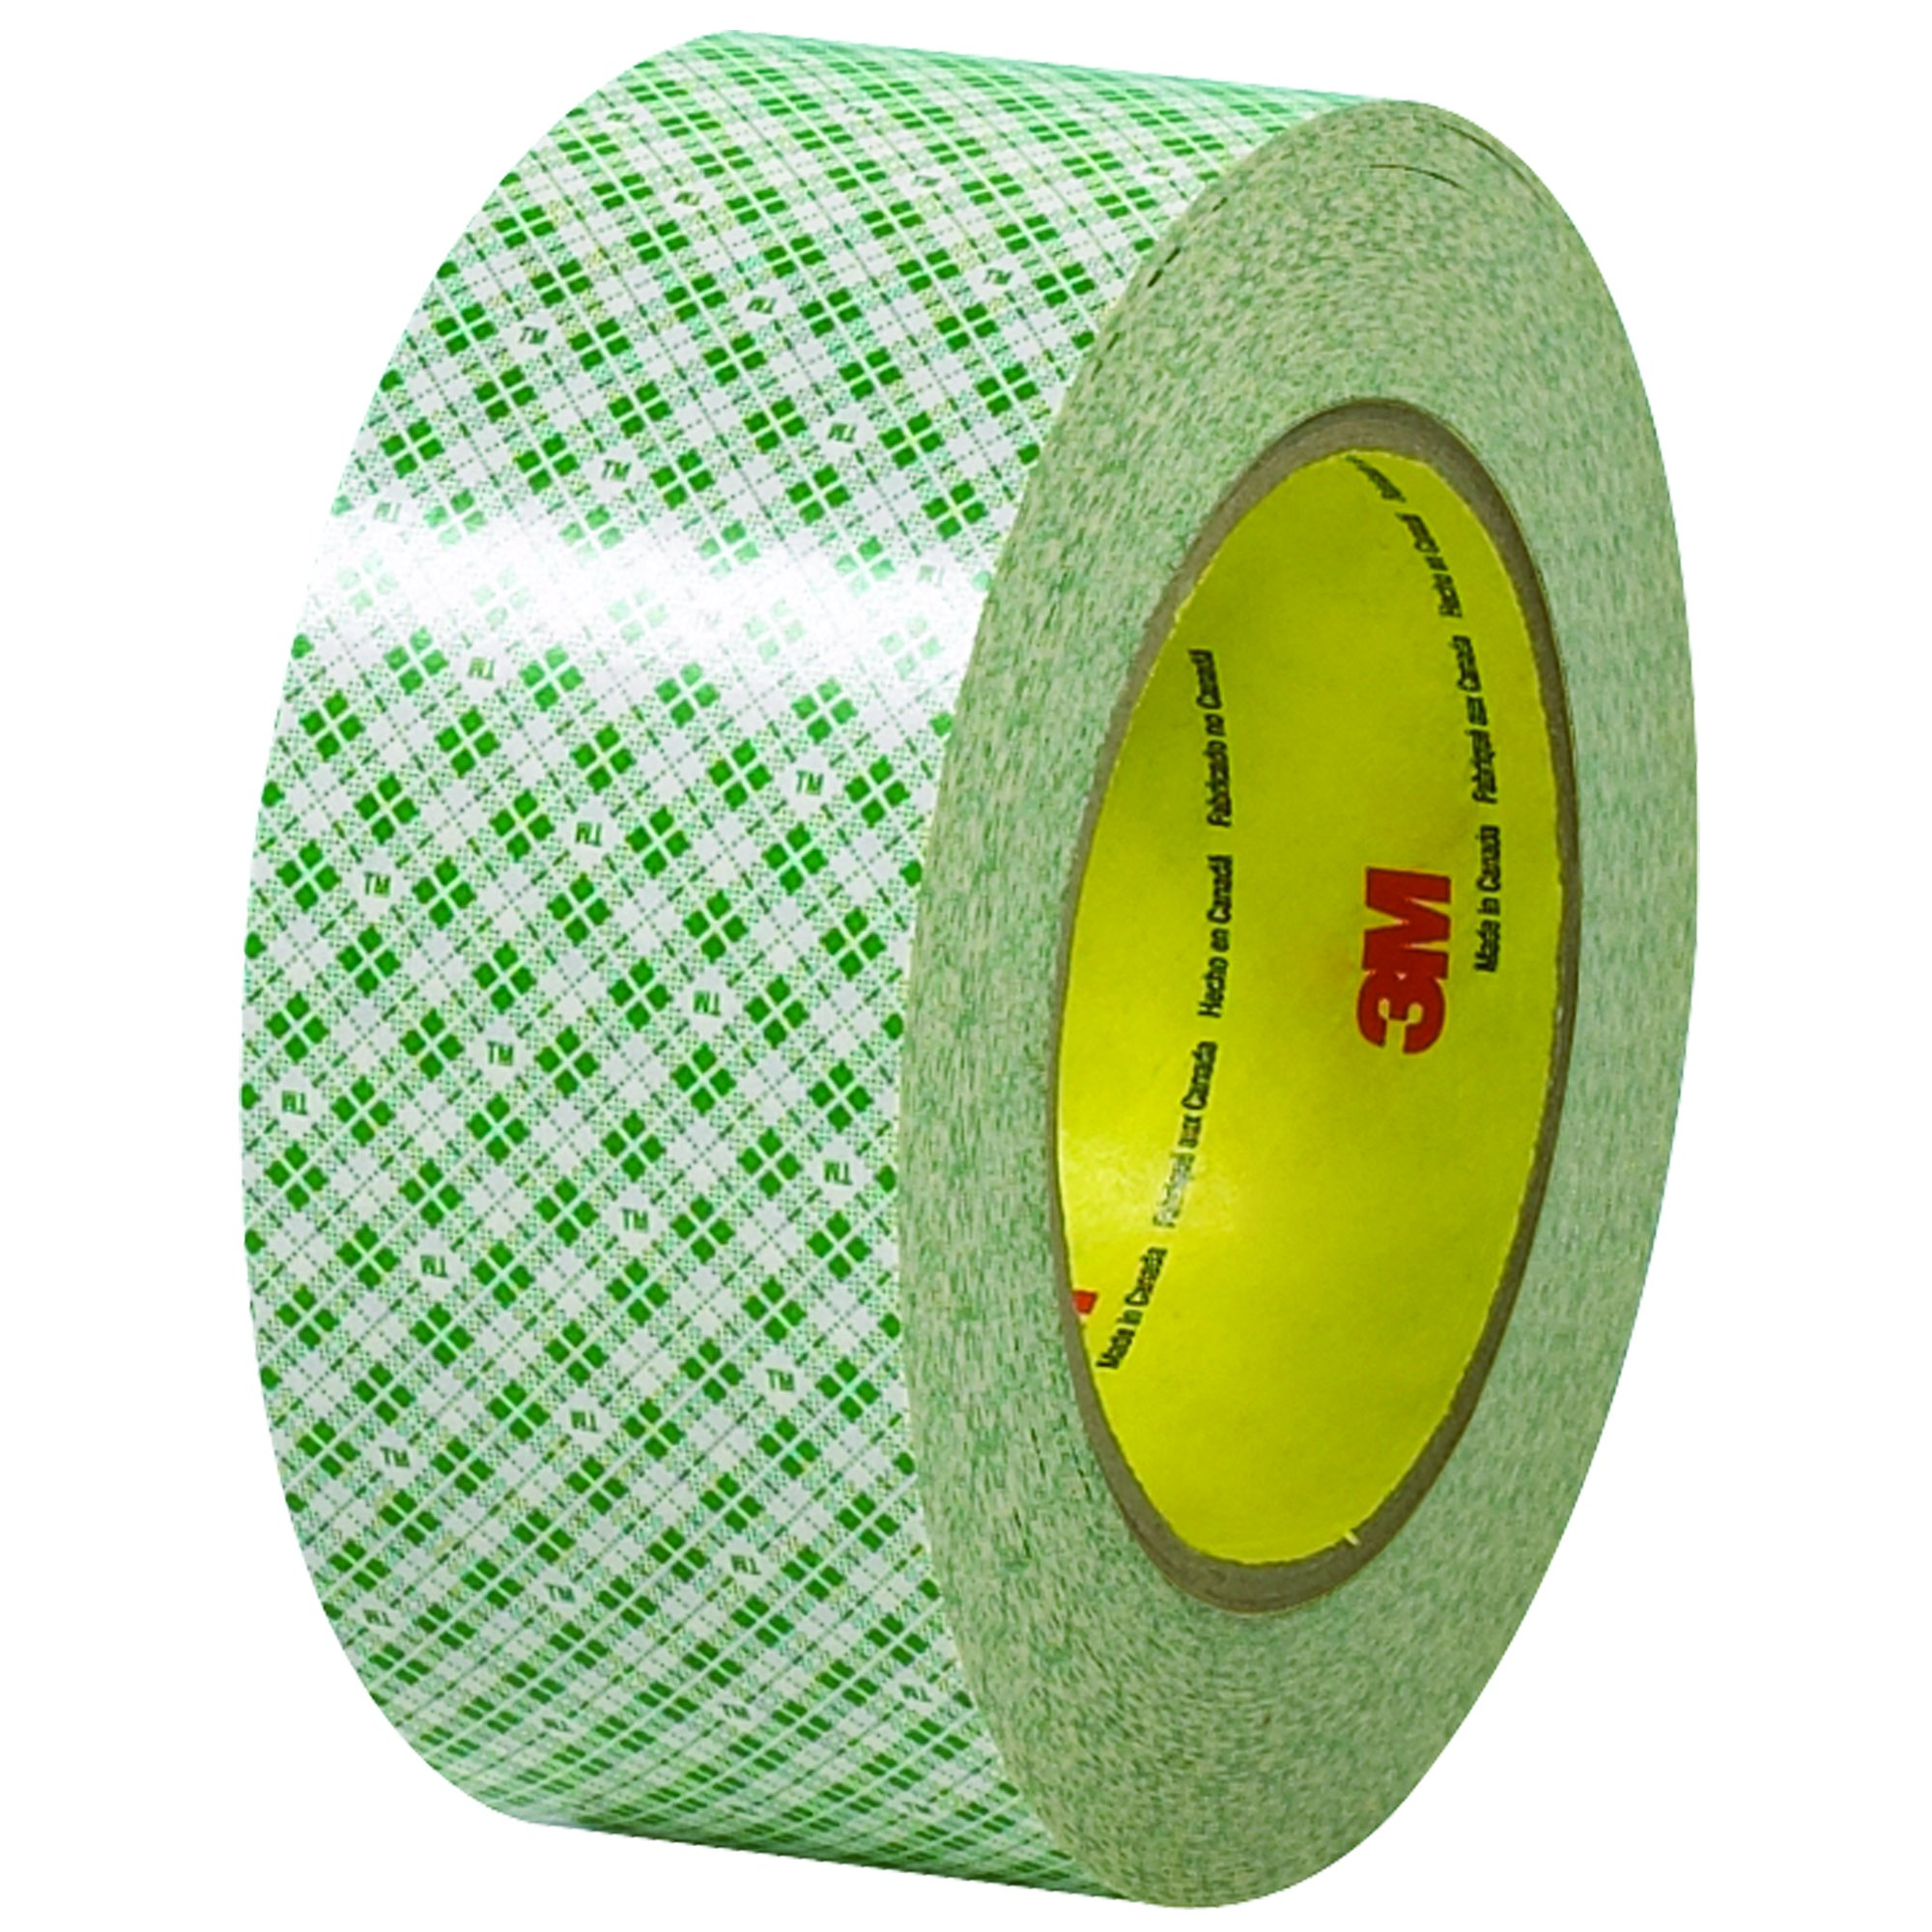 BOX BT9574103PK 3M 410M Double Sided Masking Tape, 2'' x 36 yd., Off White (Pack of 3)